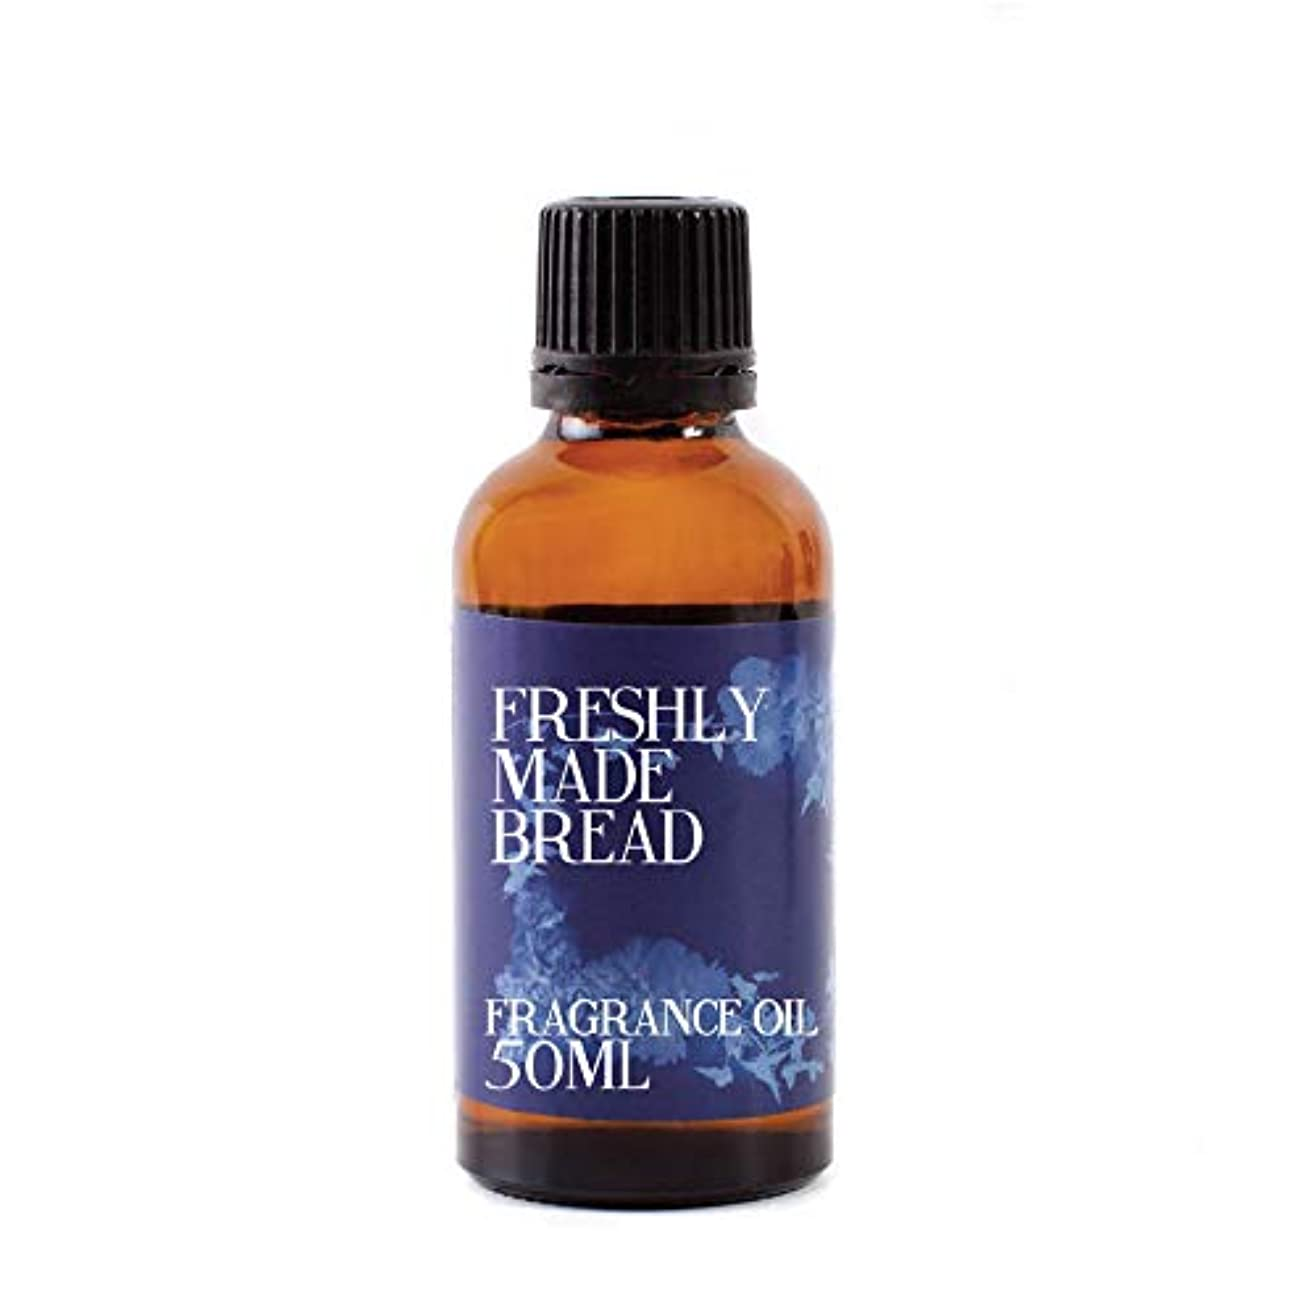 手綱個人的にジャケットMystic Moments | Freshly Made Bread Fragrance Oil - 50ml